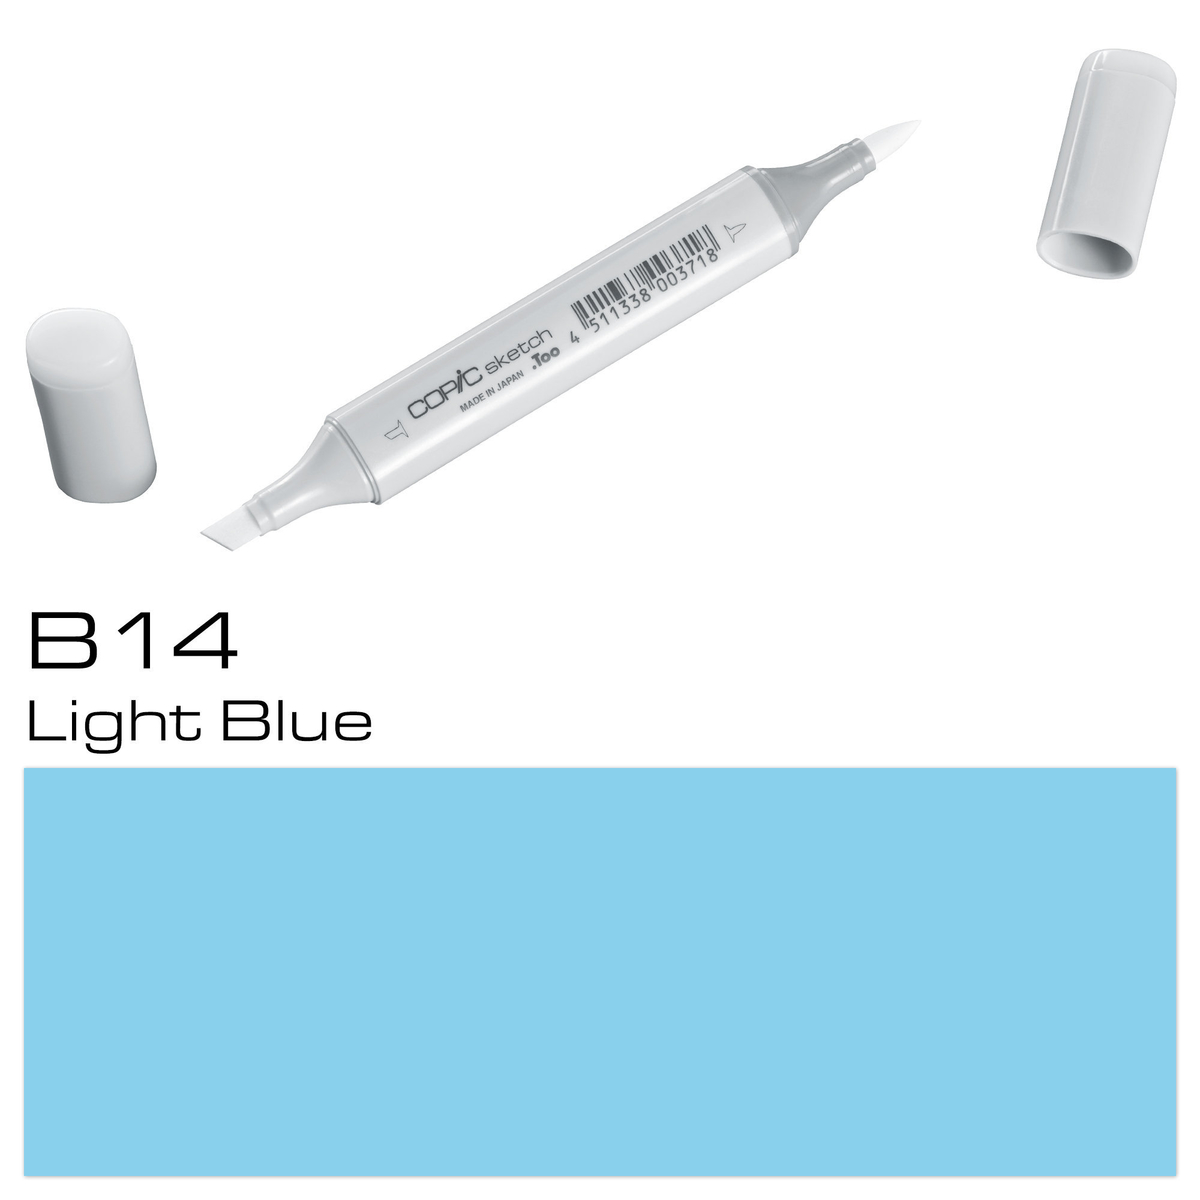 Copic Sketch B14 light blue